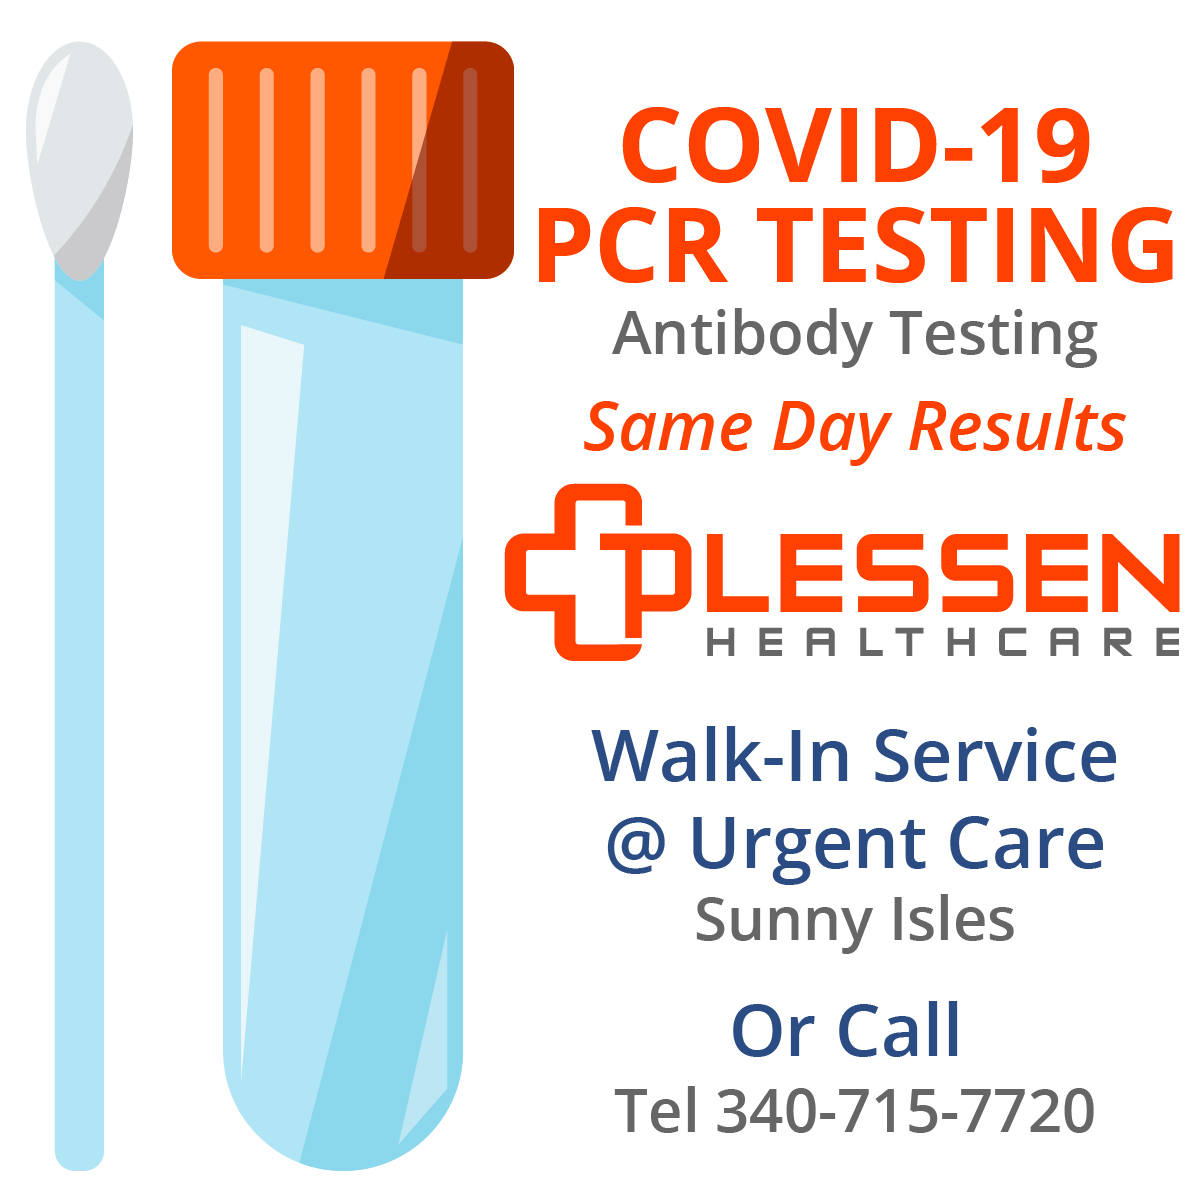 Covid-19 Testing Same Day Results